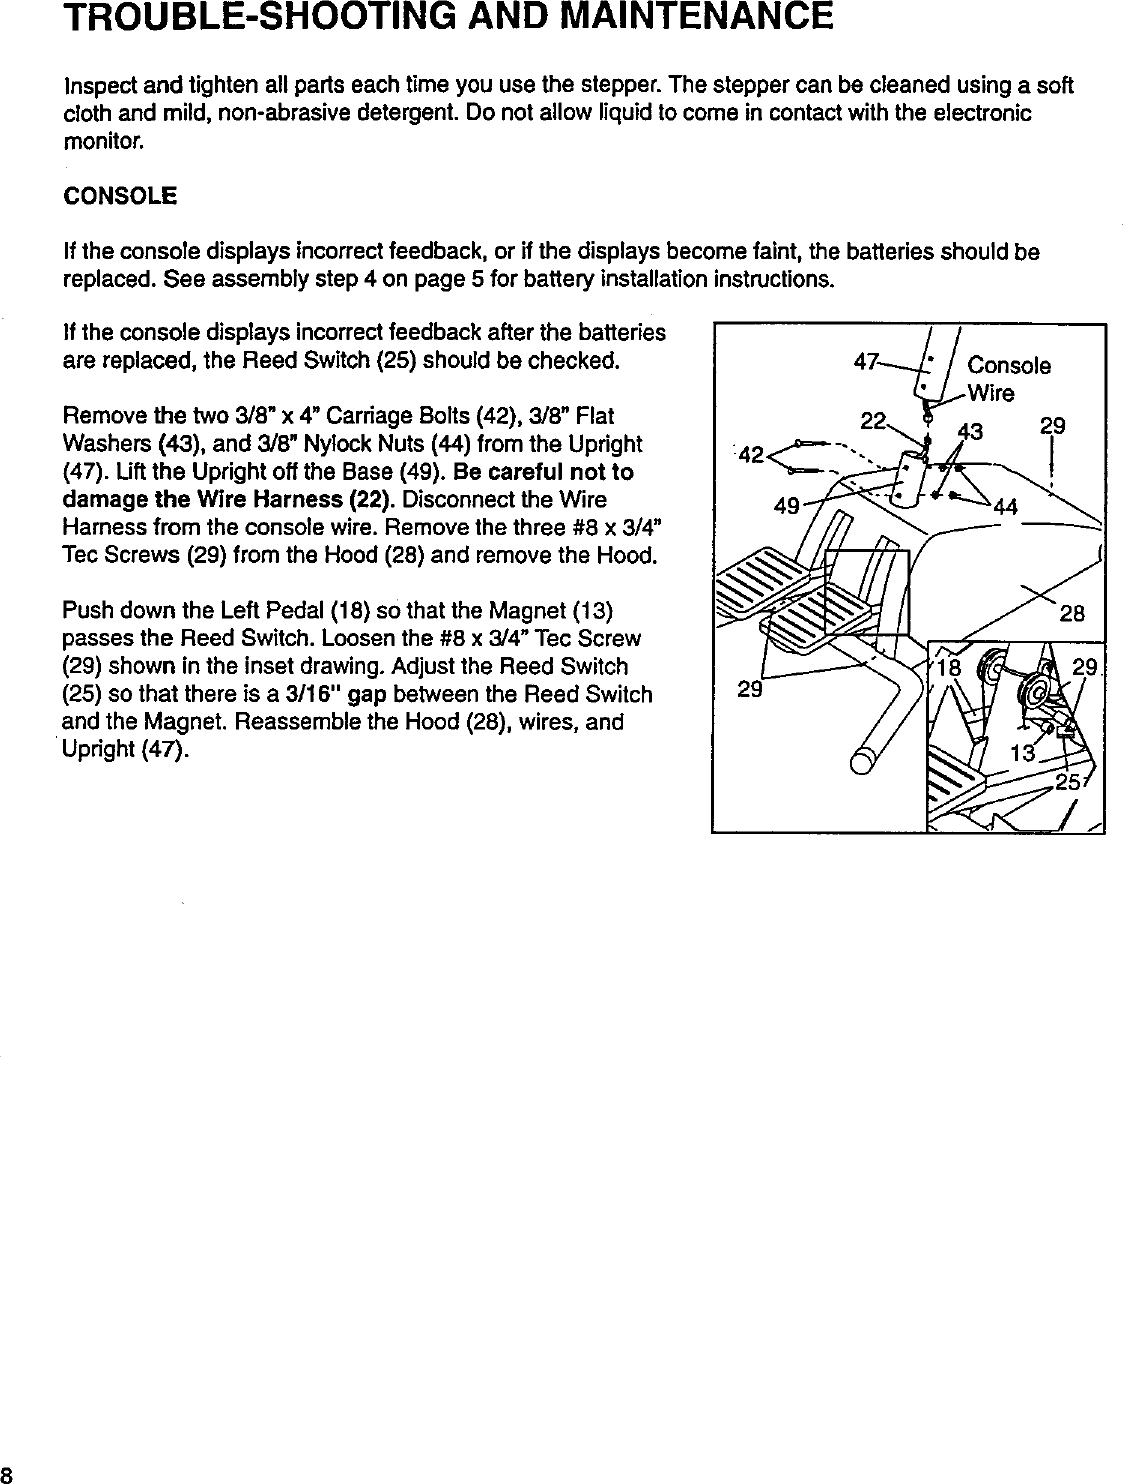 Lifestyler 831285760 User Manual St 510 Manuals And Guides 99020181 Wire Harness Magnets Page 8 Of 12